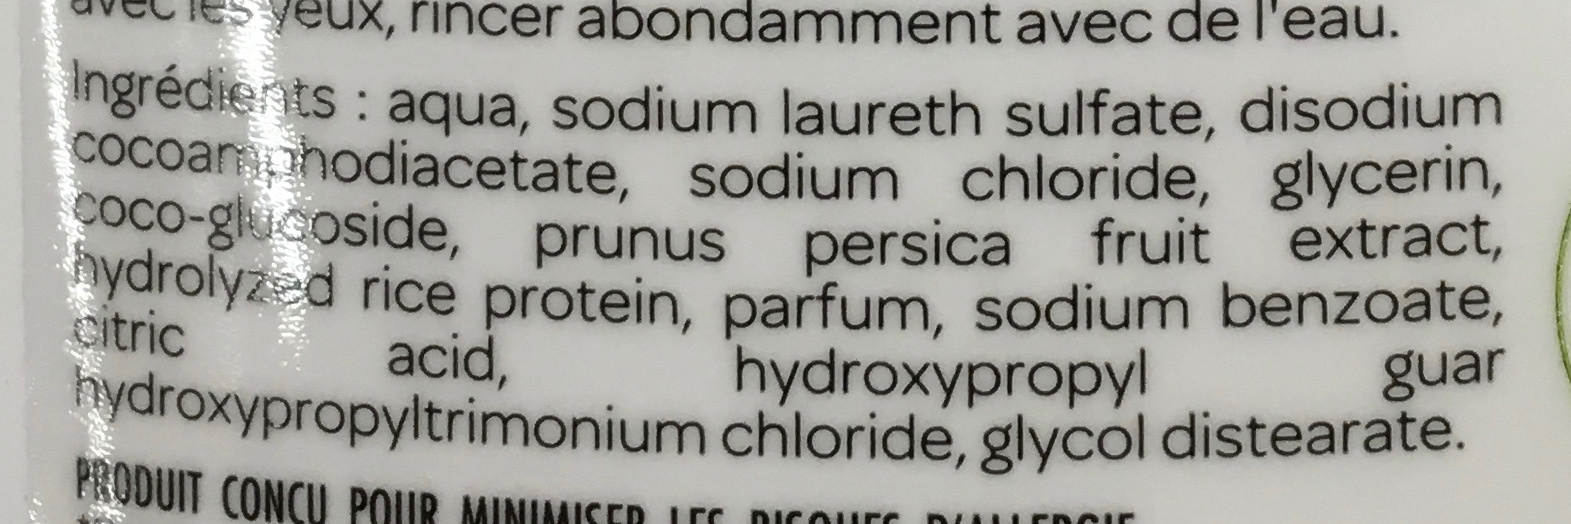 Shampooing douche soin enfants - Ingredients